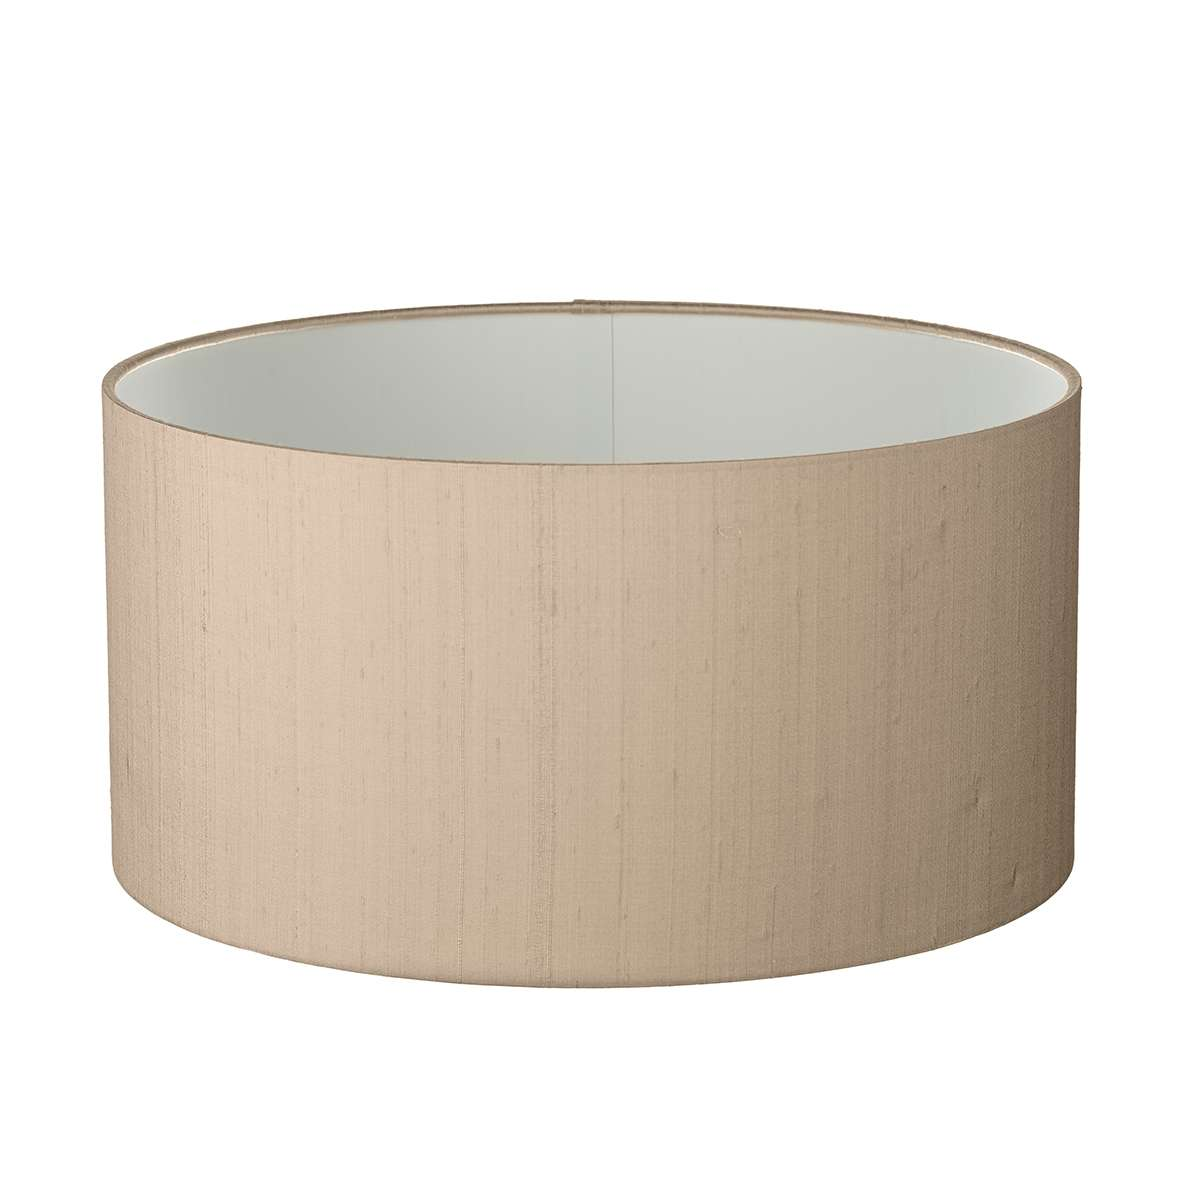 Drum Shallow 60cm 100% Silk Shade with Shade Colour Options